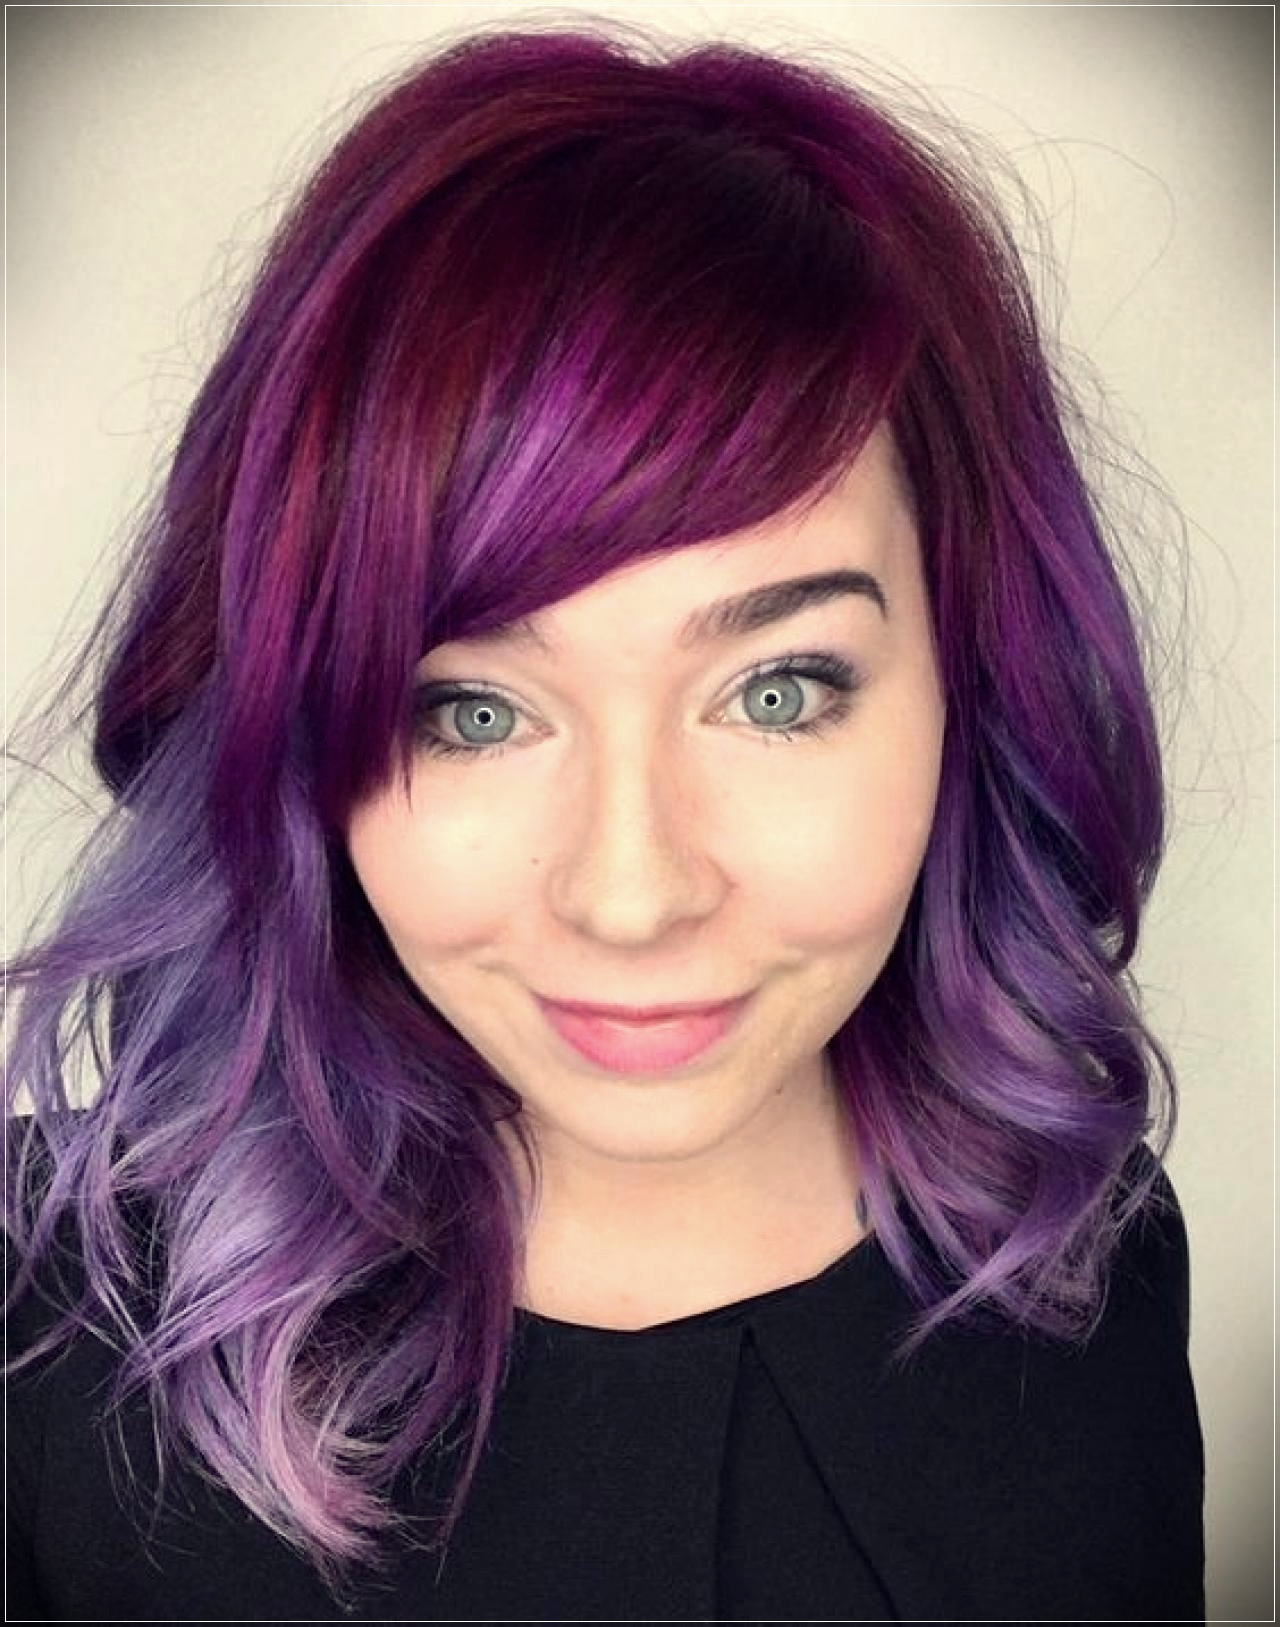 ombre hair ideas for short hair 11 - Some useful ombre hair ideas for short hair